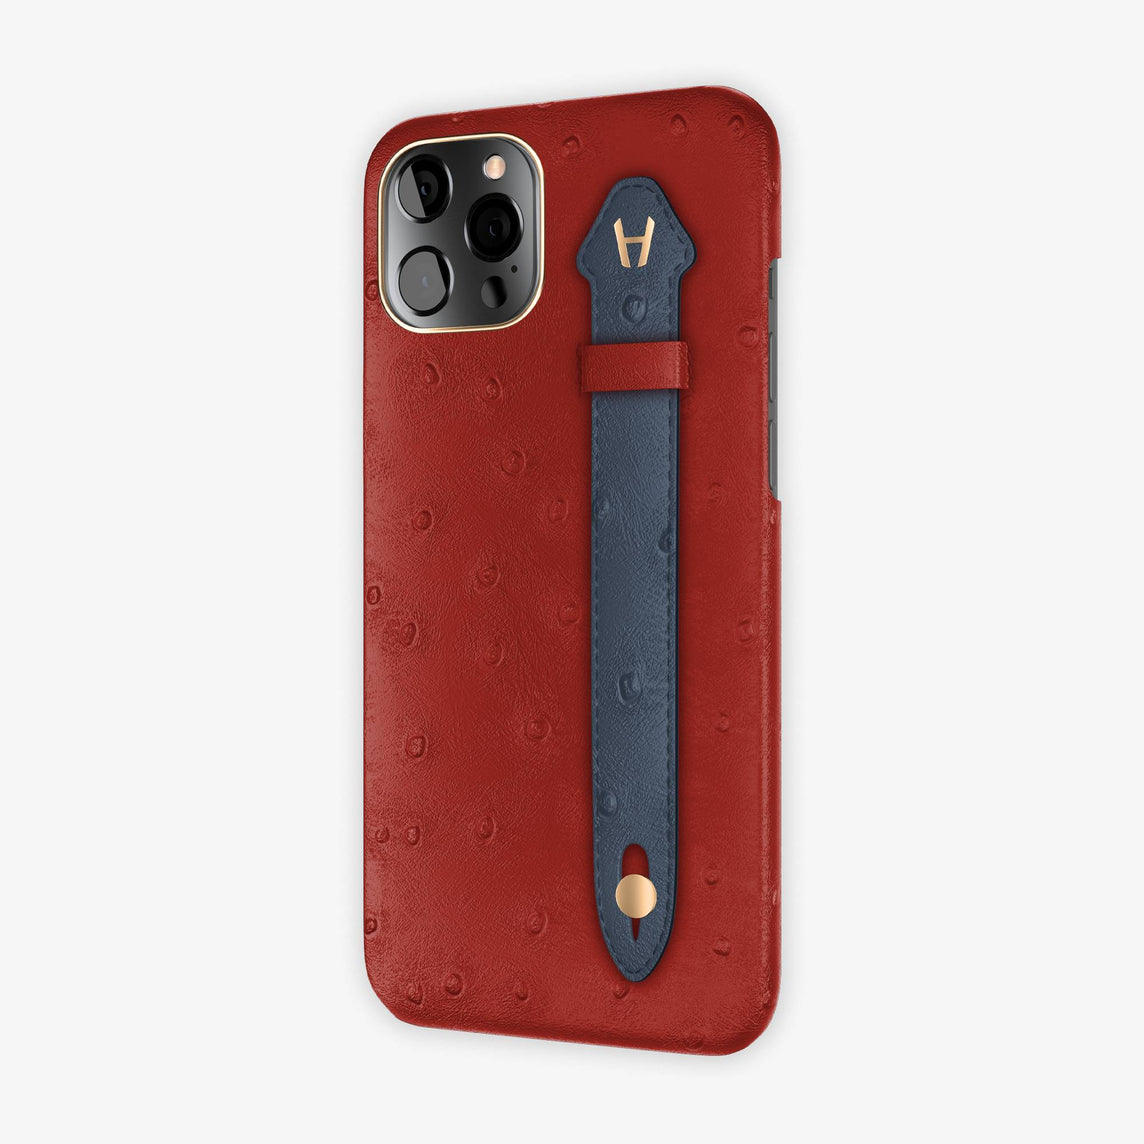 Ostrich Side Finger Case iPhone 12 Pro Max | Red/Navy Blue - Rose Gold